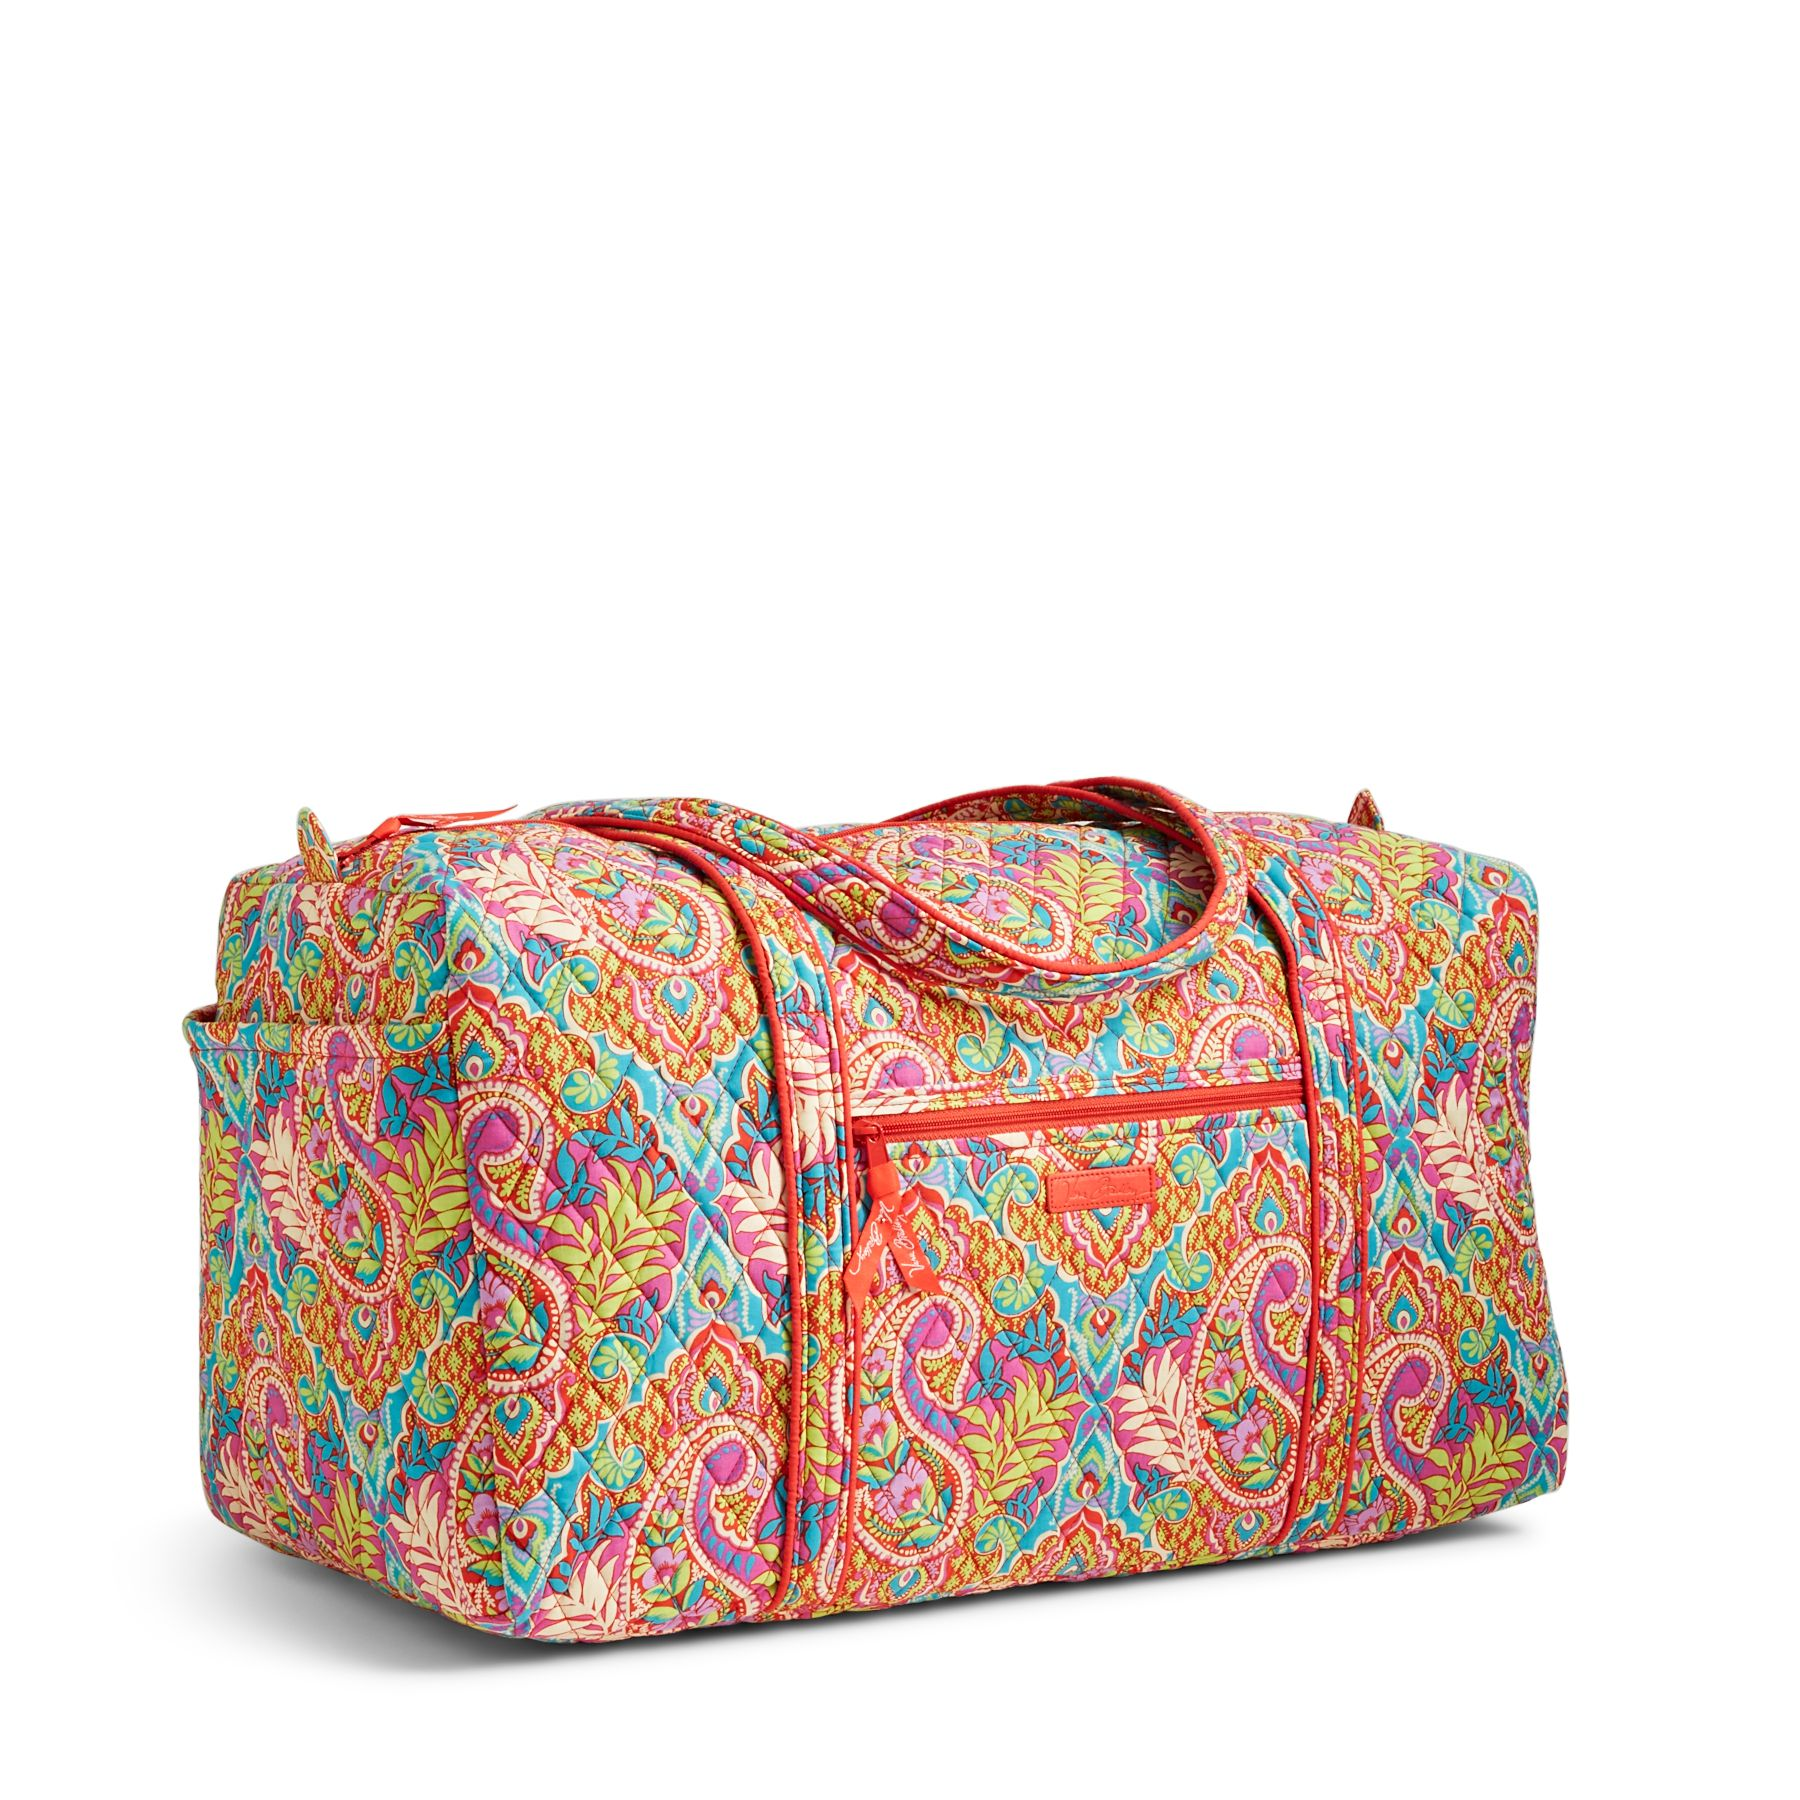 Vera Bradley Outlet Online Shopping Www Industry Shopping Network Com Shop Vera Bradley Outlet Online Shopping Come Shopping With Me Youtube At Home Shopping Online Online Websites To Sell And Buy Items My Shed blueprint Elite gives plans for bigger buildings and outbuildings too.